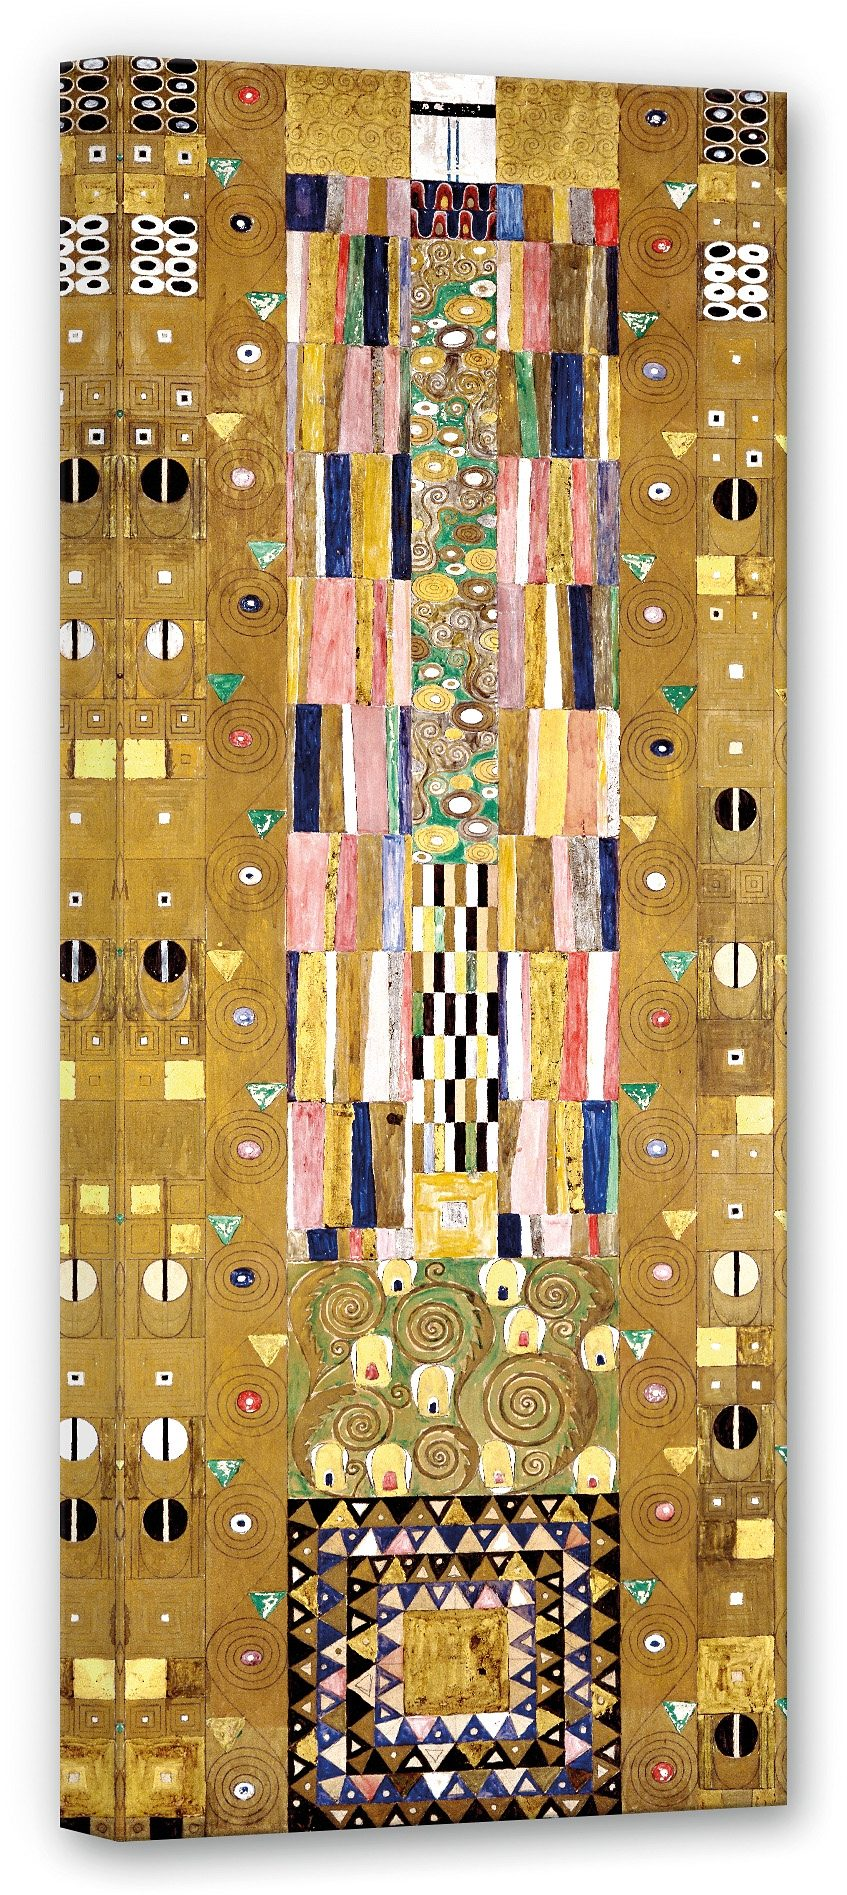 Premium collection by Home affaire Leinwandbild »Klimt - Werkvorlage für den Stocletfries«, 40/100 cm